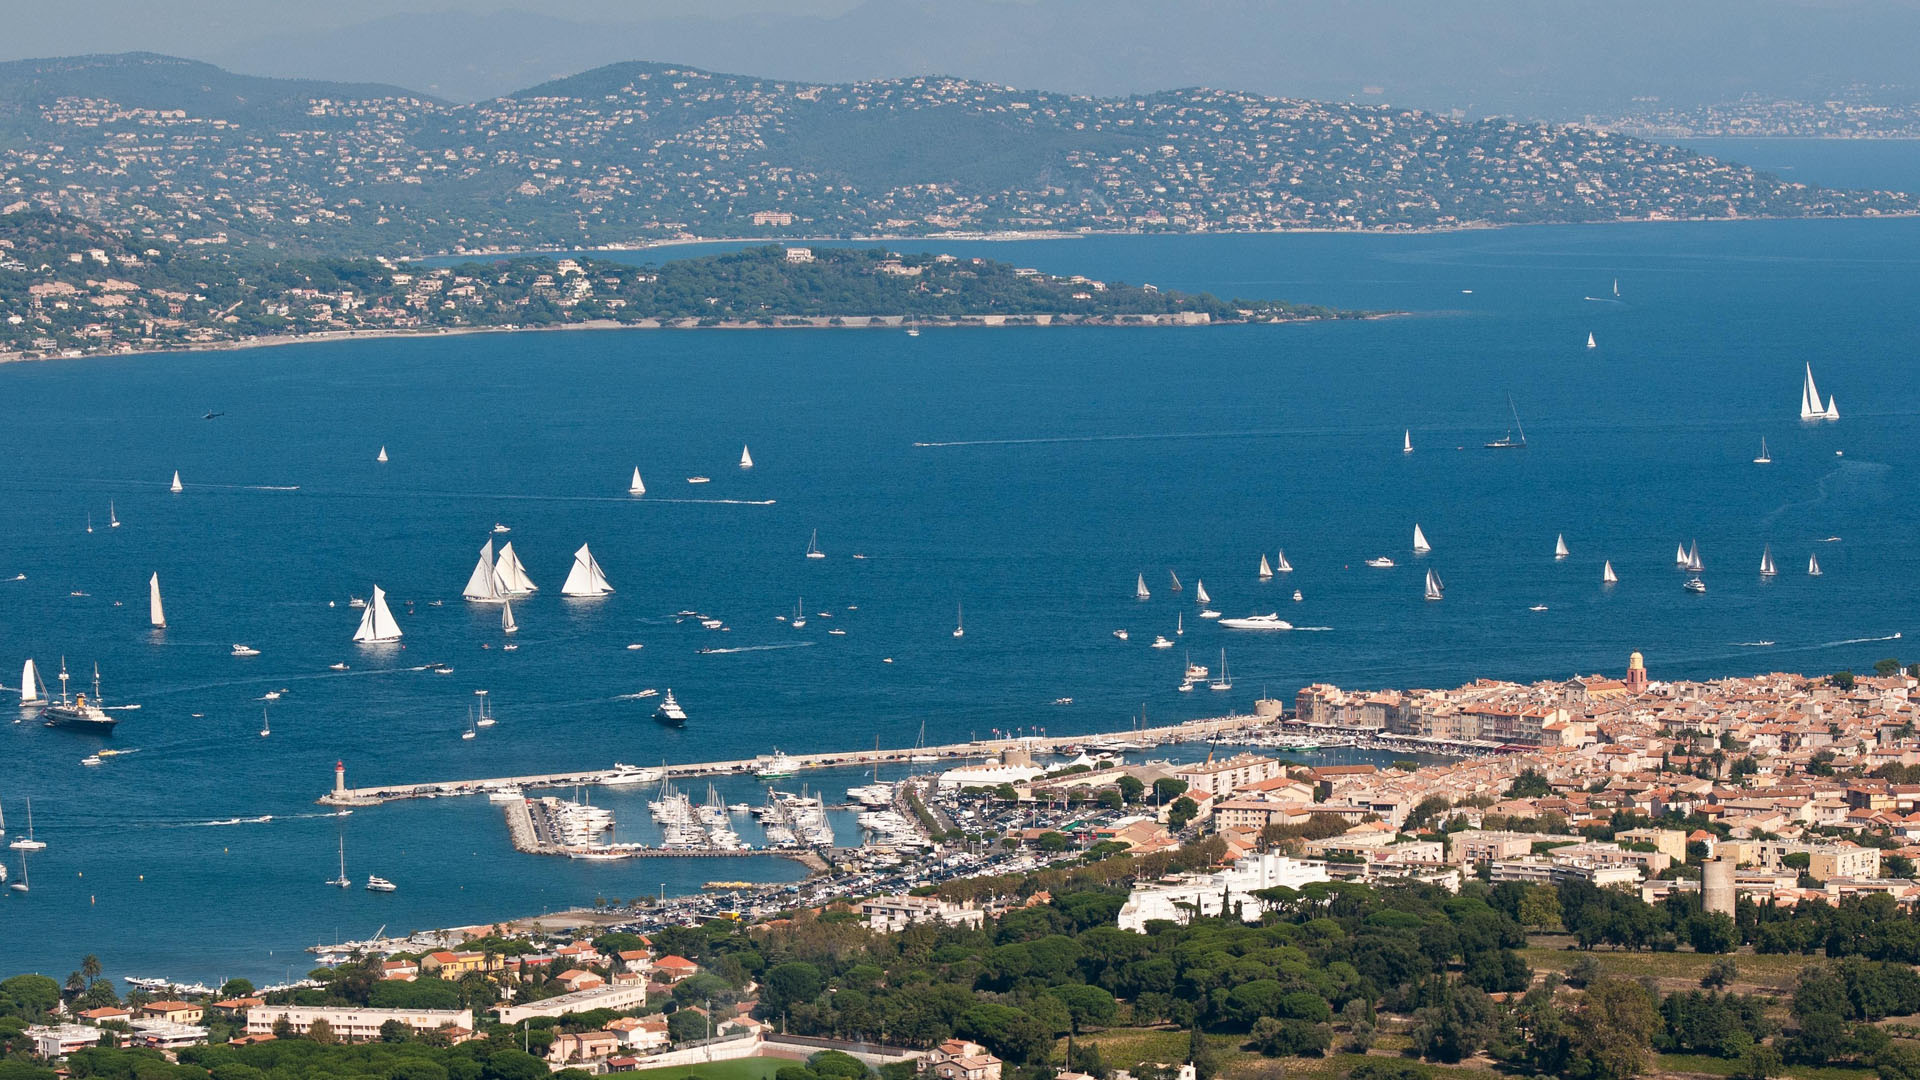 Hotel and Spa near Saint Tropez (French Riviera)